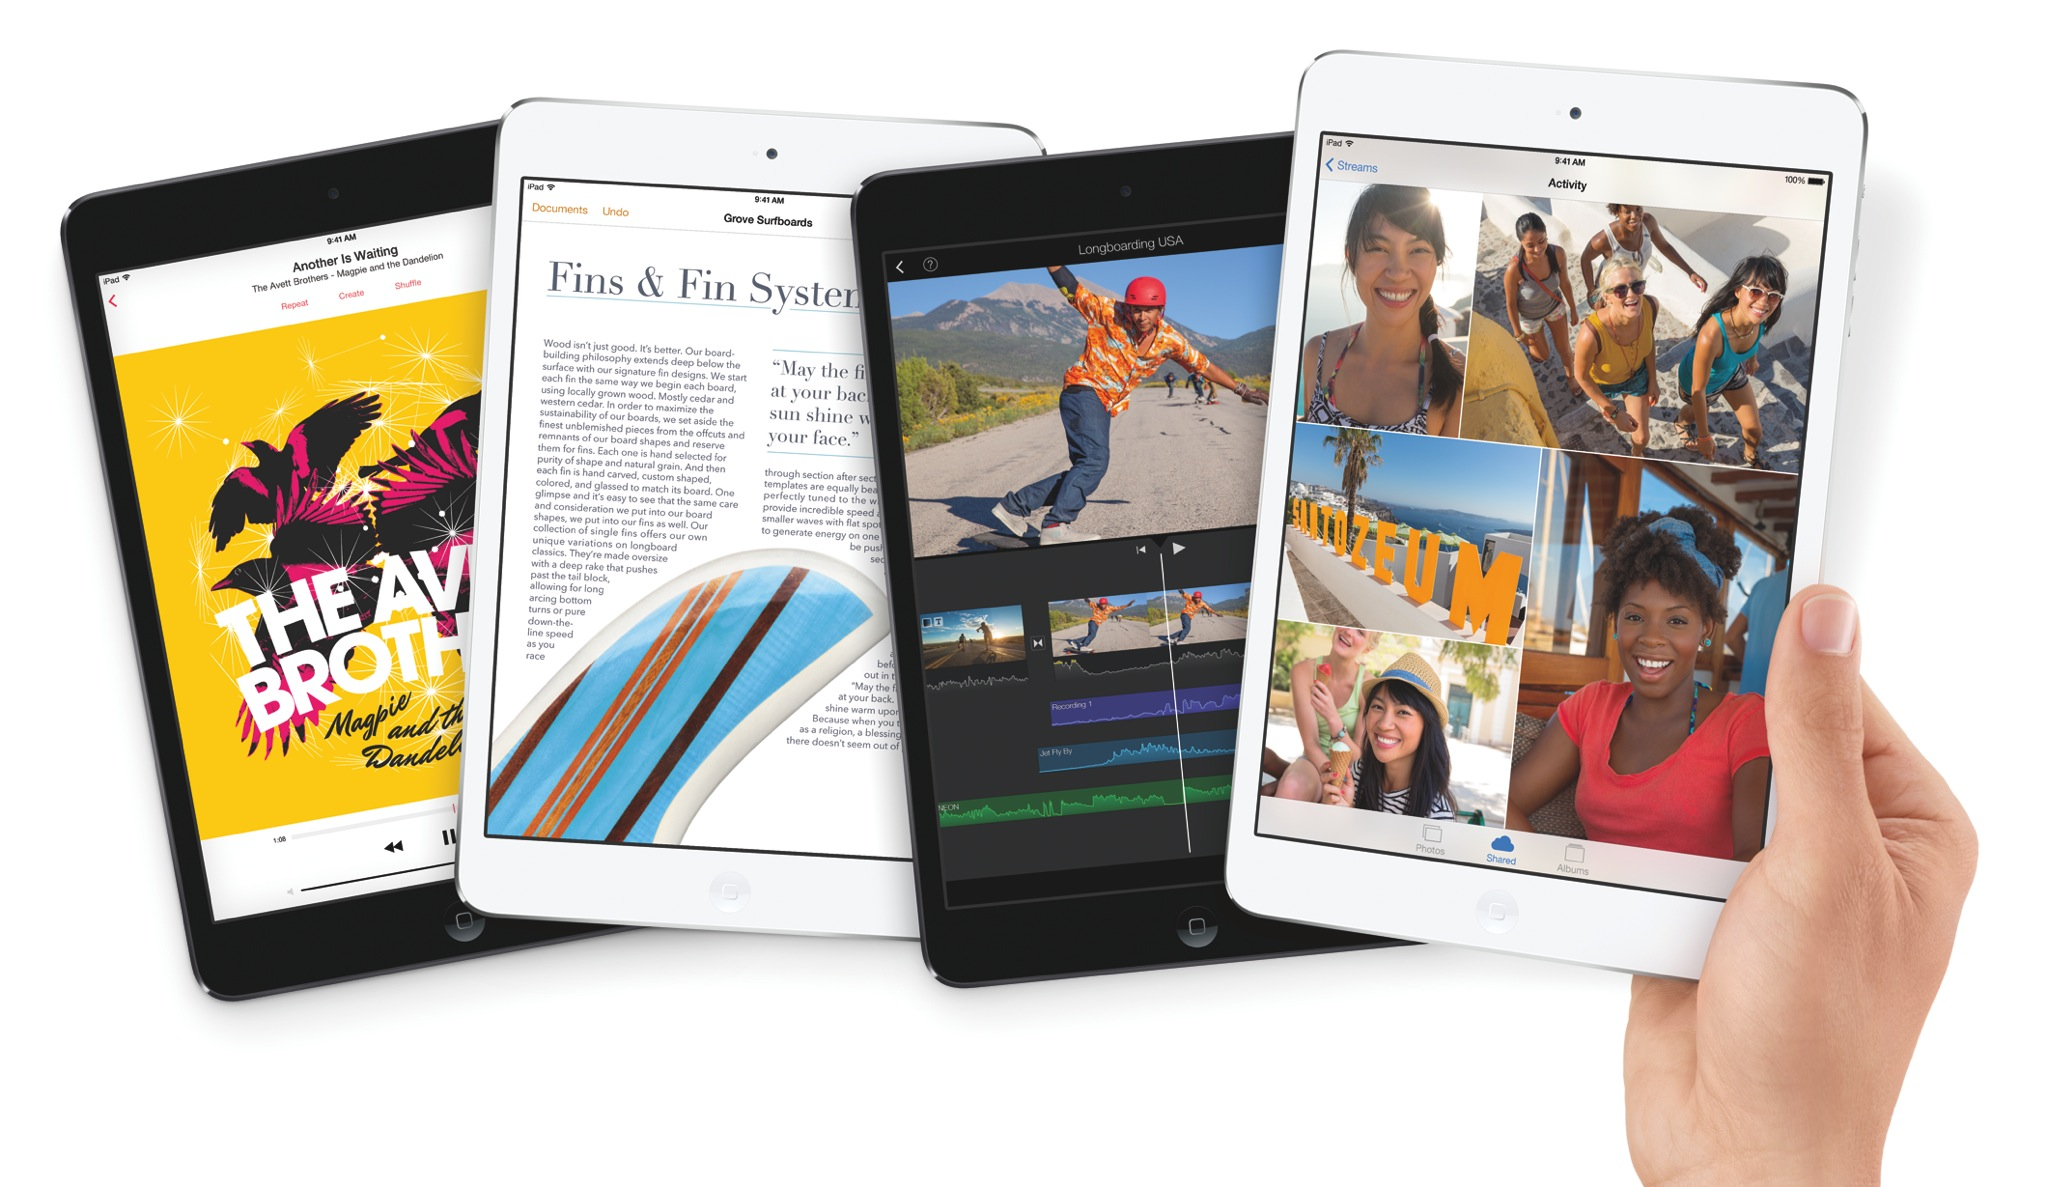 2013 iPad mini 2 (Retina, Four up, hand)